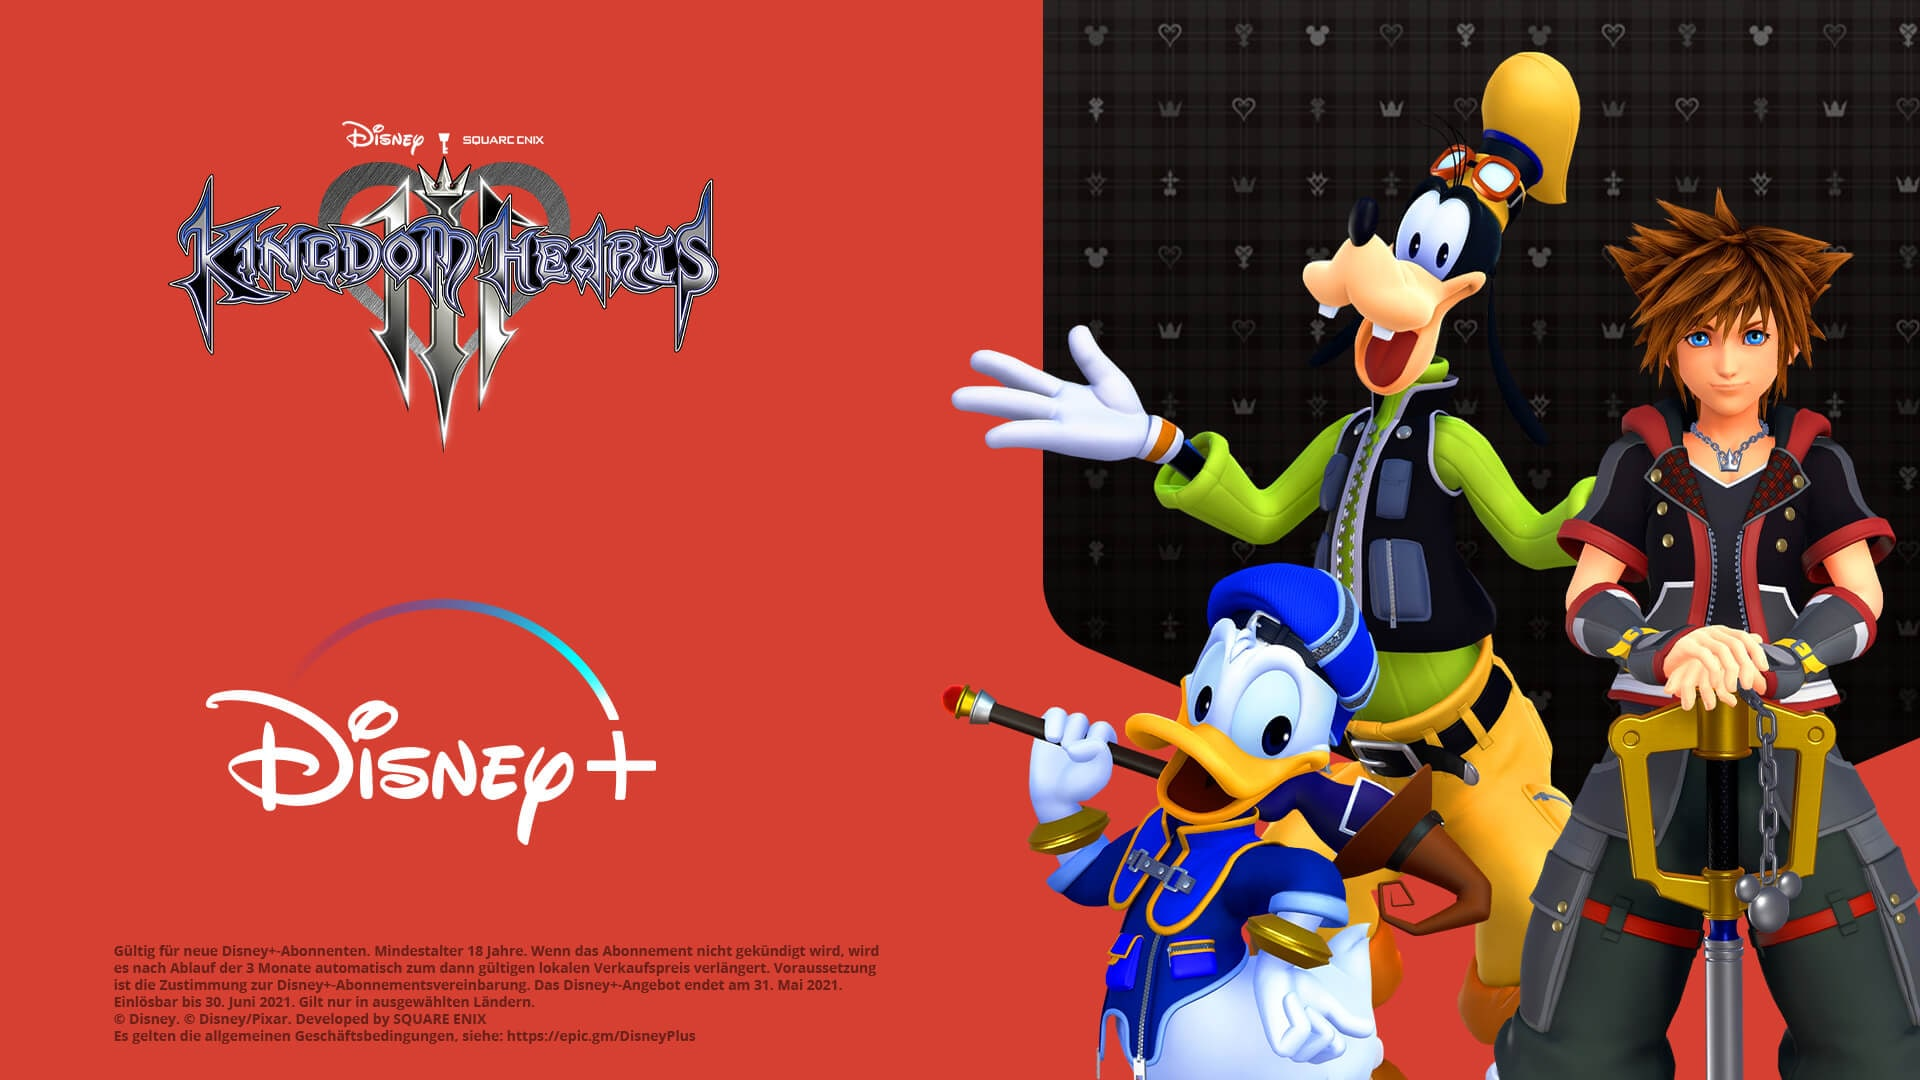 Get 3 months of Disney+ free when you buy KINGDOM HEARTS III on Epic Games Store